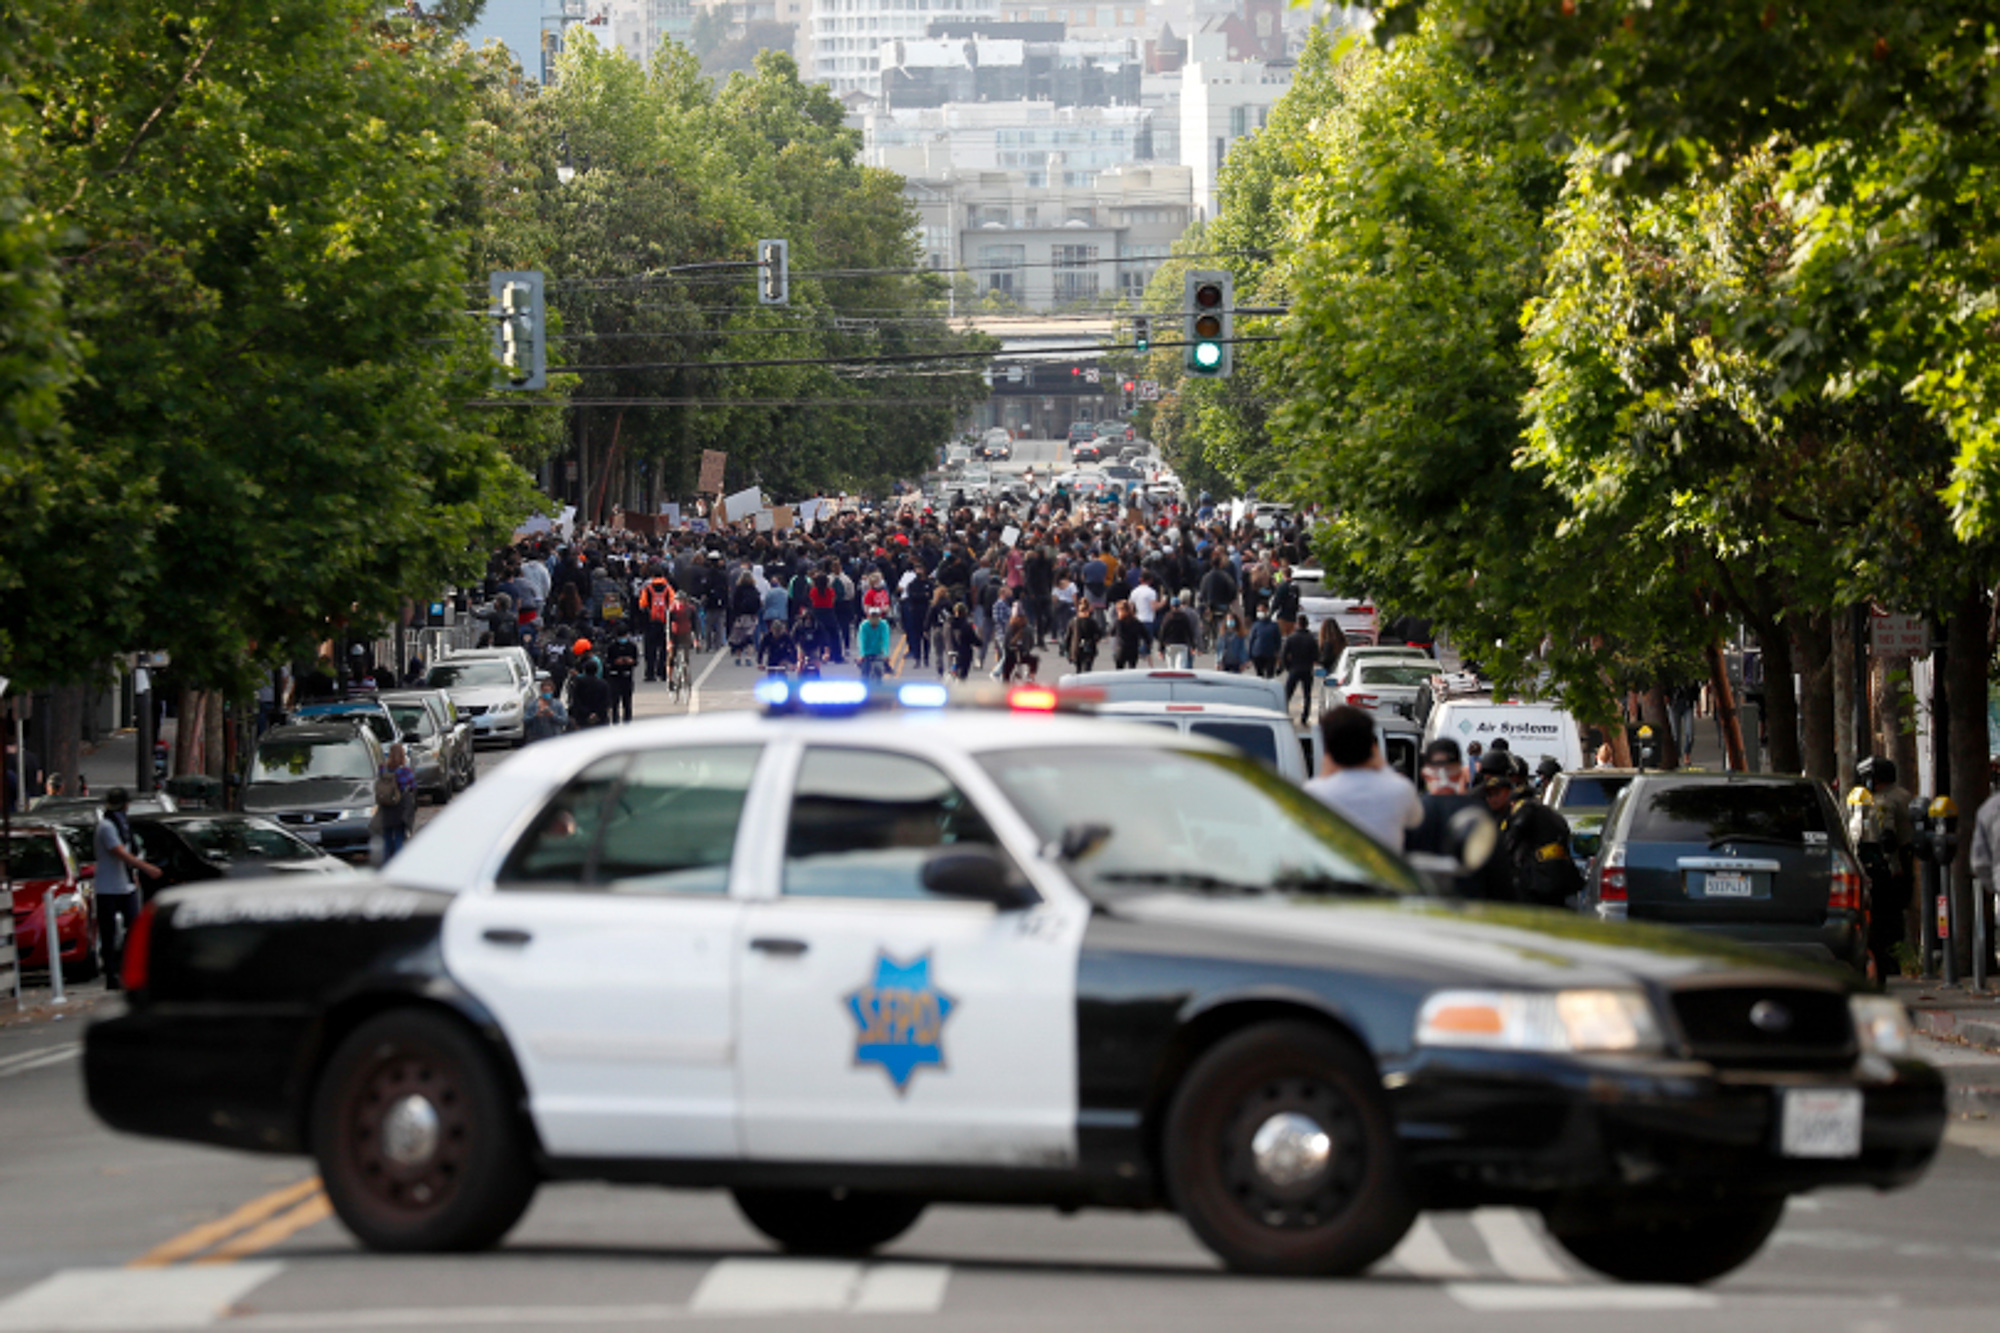 A patrol car closes off Valencia Street in San Francisco after a group of protesters gathered in front of the Mission Police Station on May 30, 2020, the second day of Bay Area unrest over the George Floyd killing in Minneapolis. Photo by Karl Mondon, Bay Area News Group